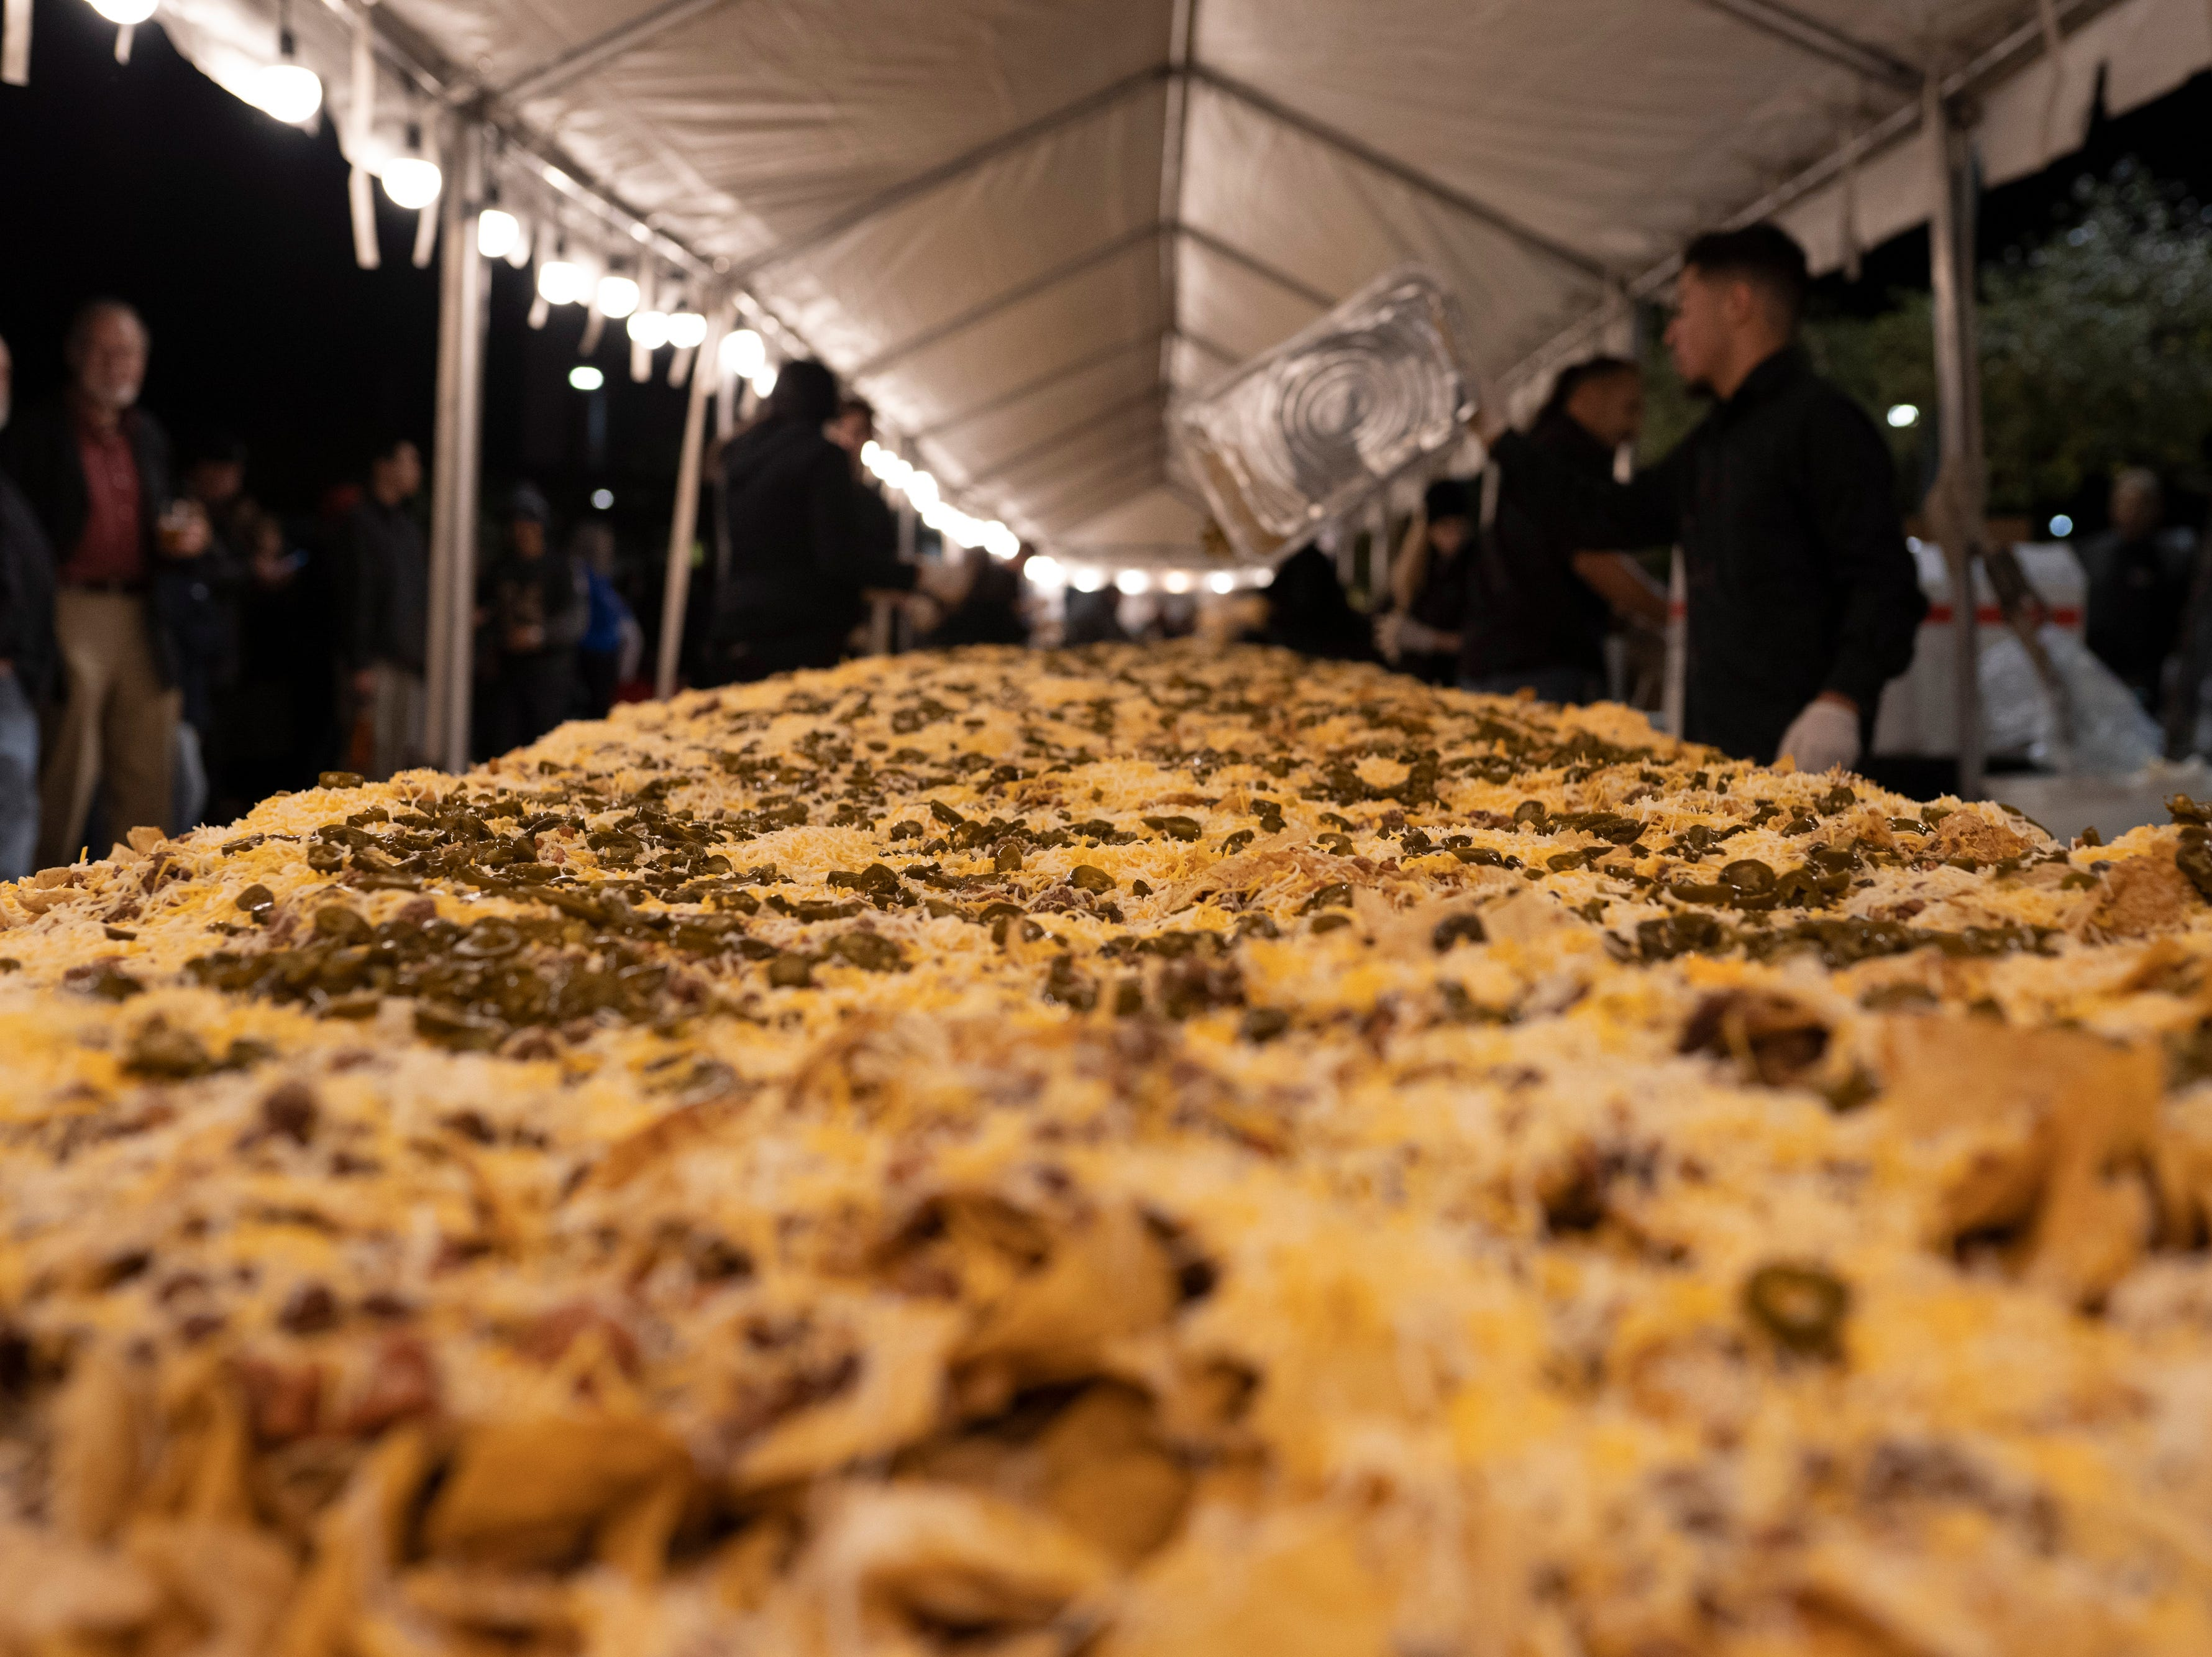 Here's what 5,039 pounds of nachos looks like